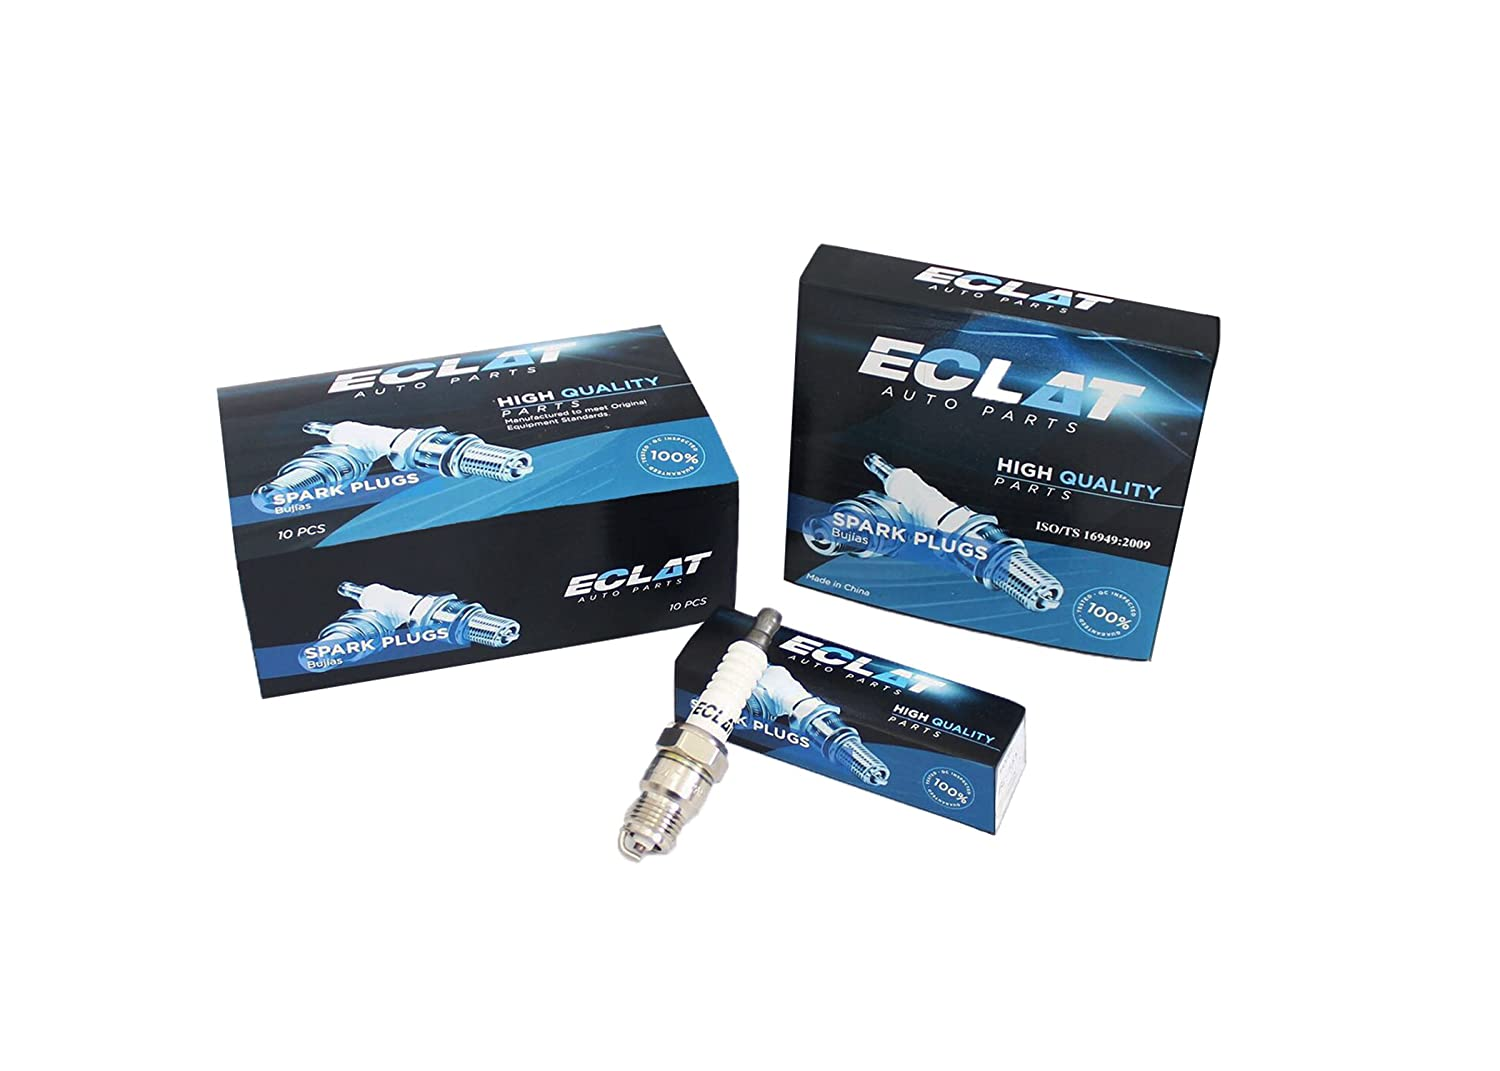 Amazon.com: Eclat ECN9YC (N9YC) Engine Replacement Coopper Spark Plug (Pack of 4): Automotive